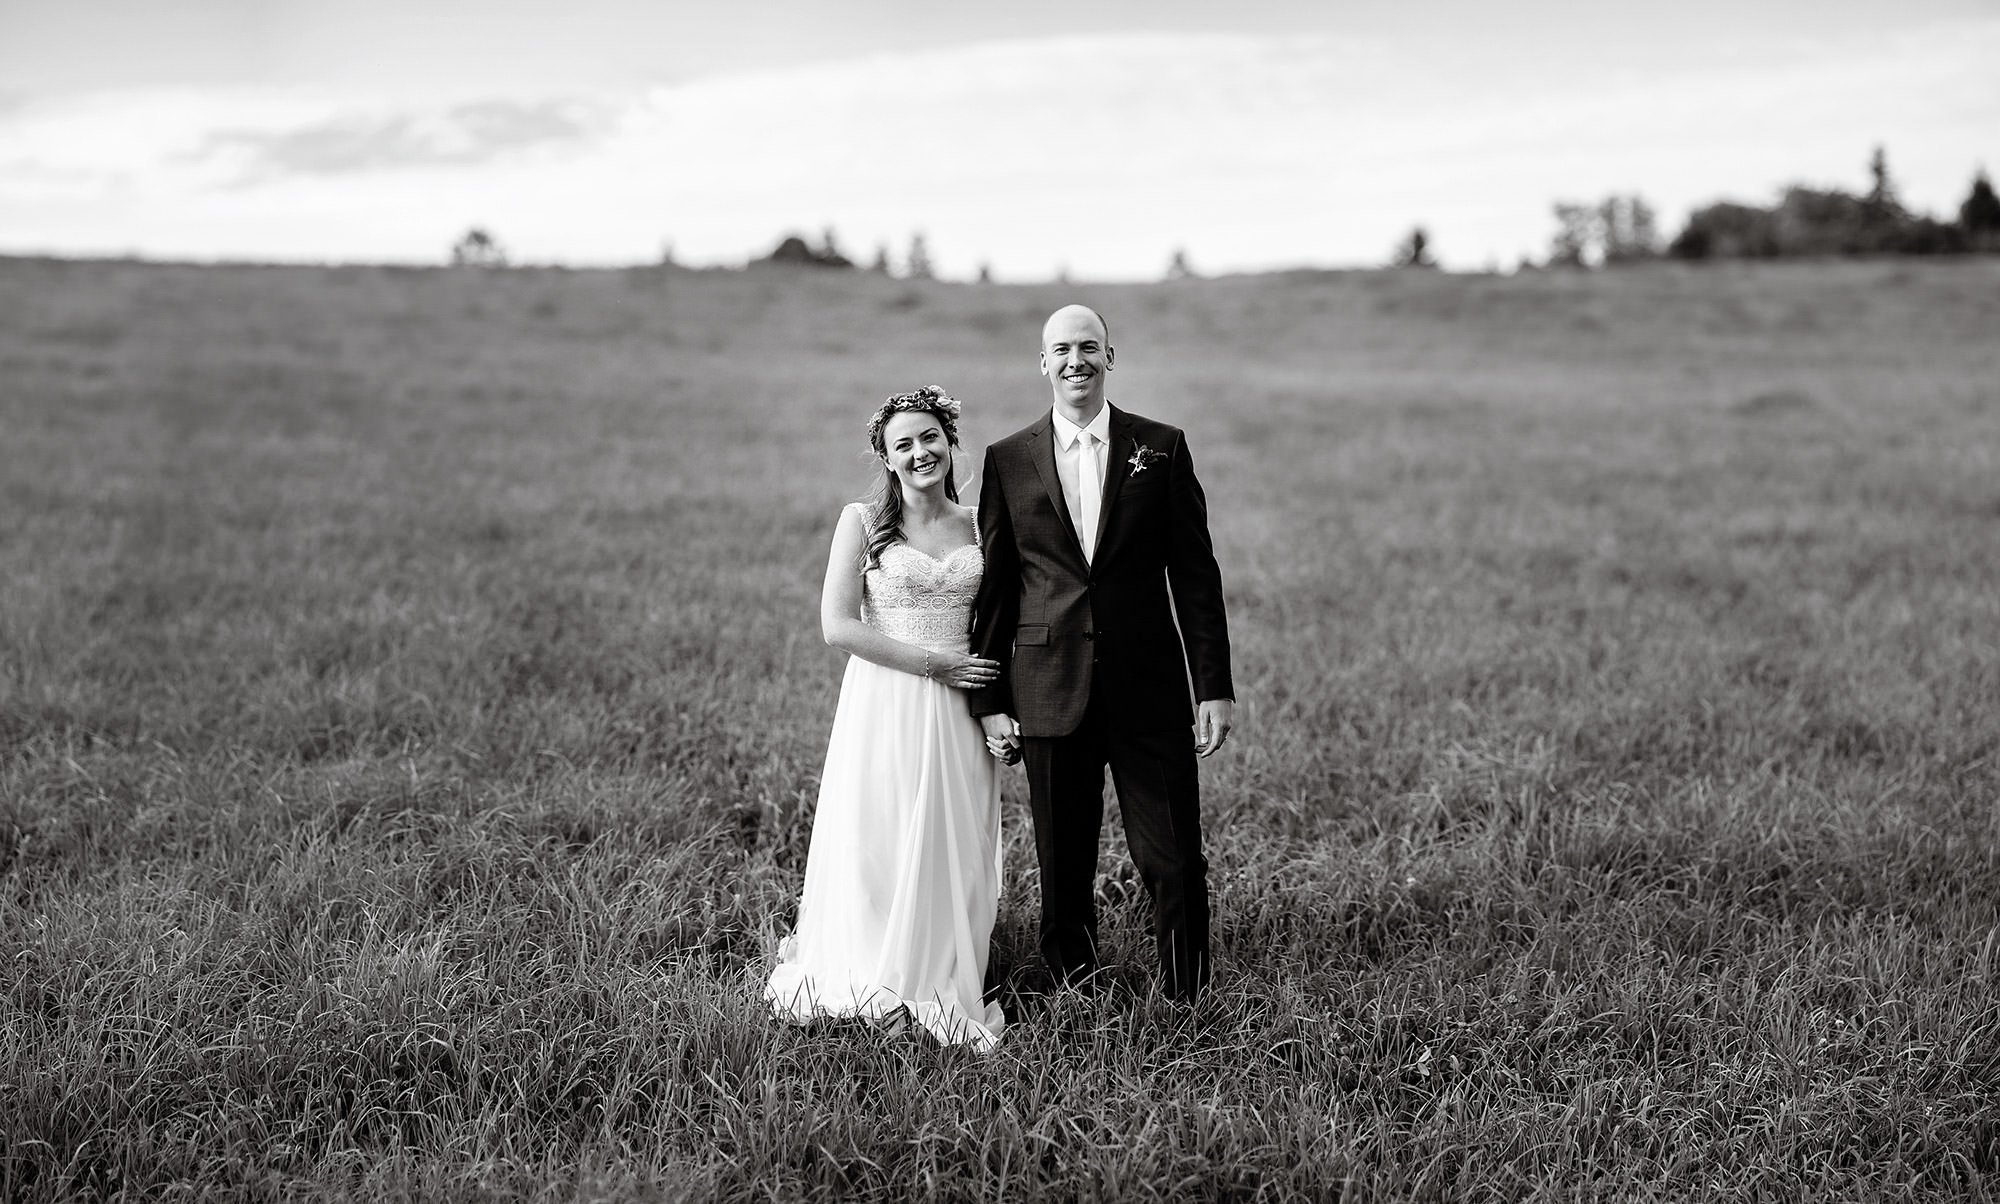 Vermont Family Farm Wedding  I  The bride and groom pose in a field on their wedding day.